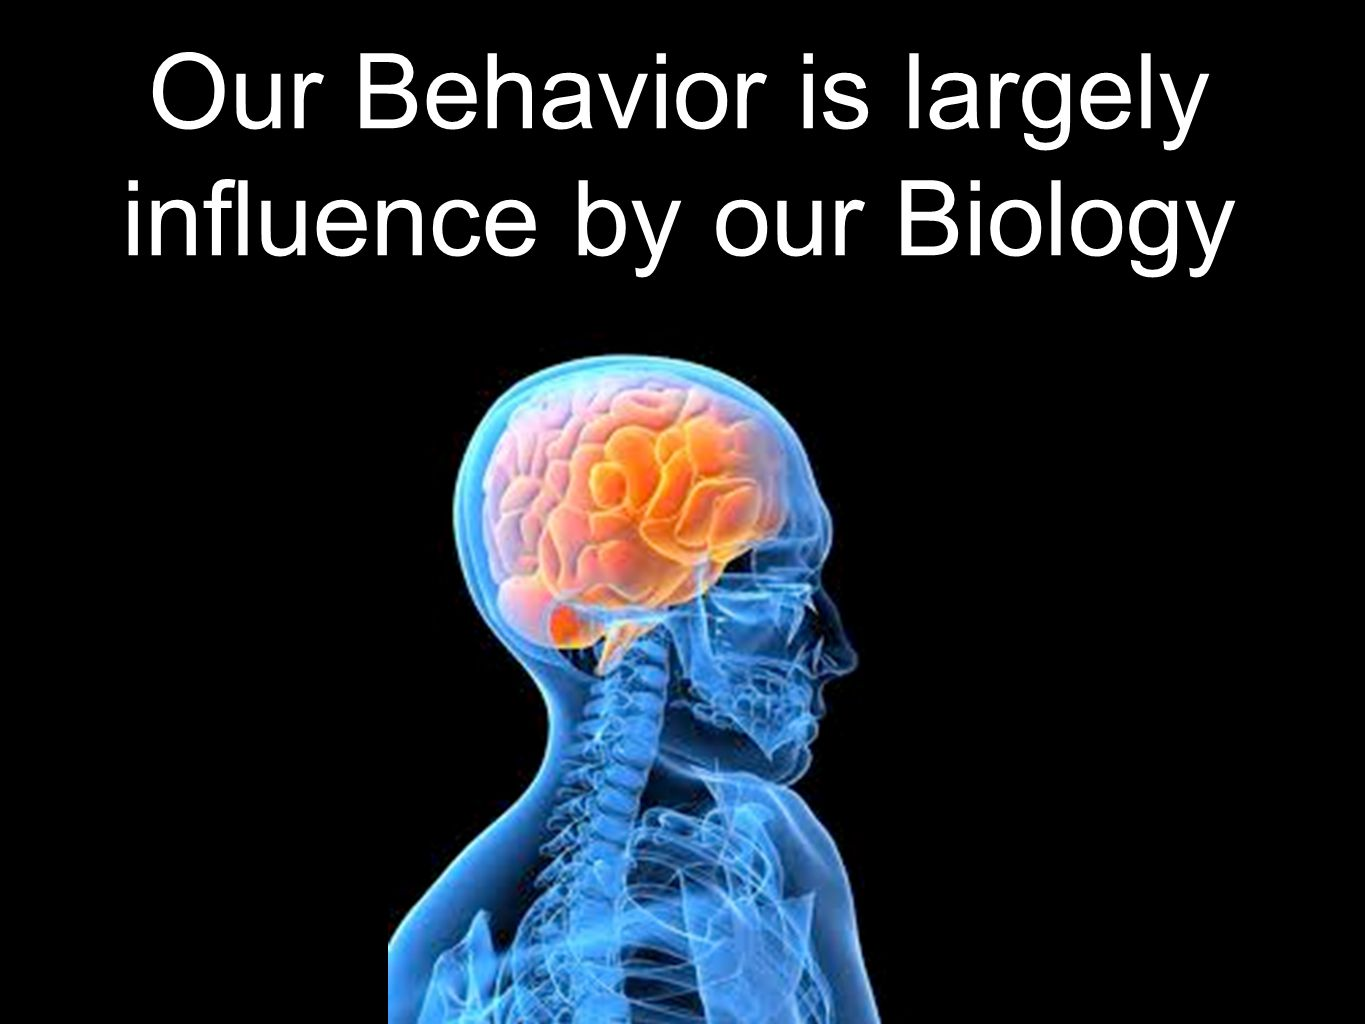 Our Behavior is largely influence by our Biology